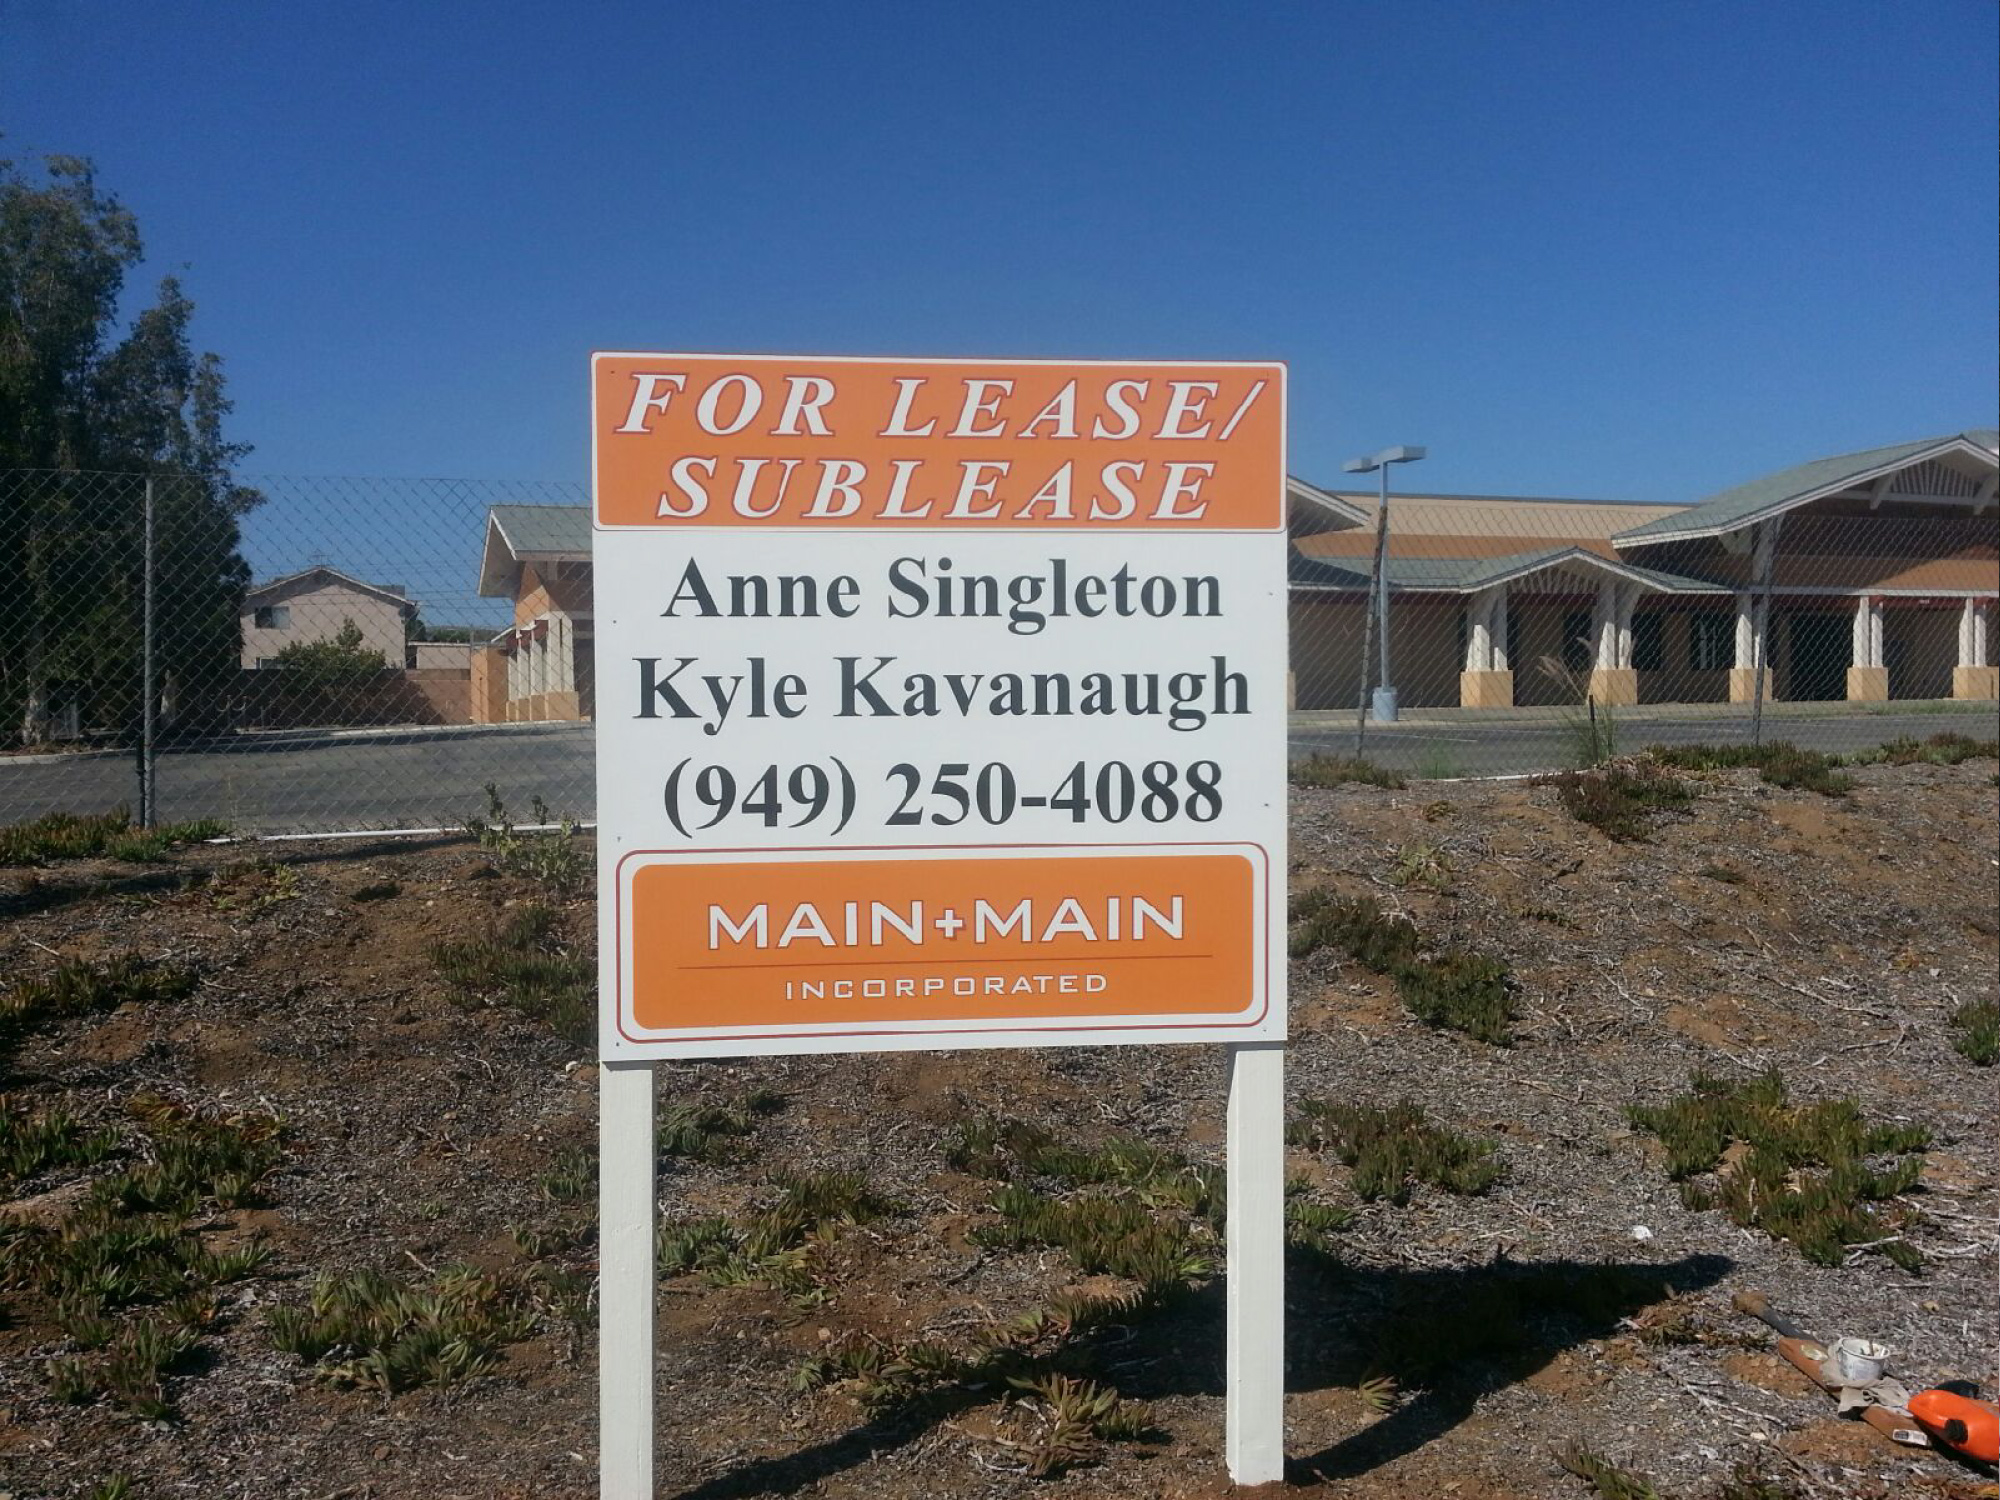 Commercial Real Estate Signs Property Signs Rsisigns